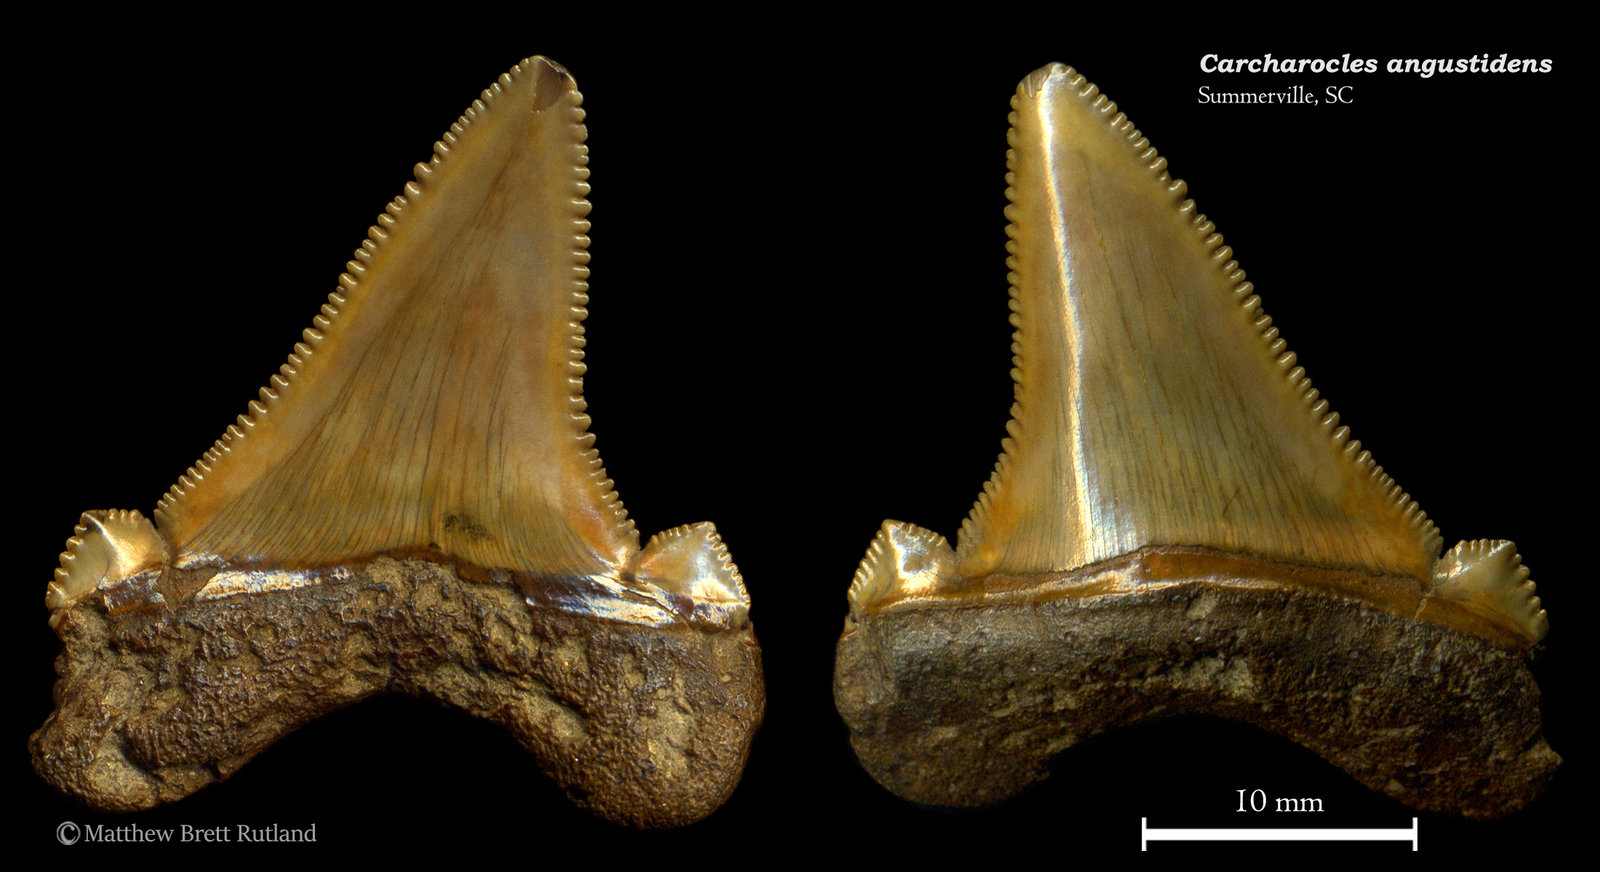 Carcharocles angustidens 10